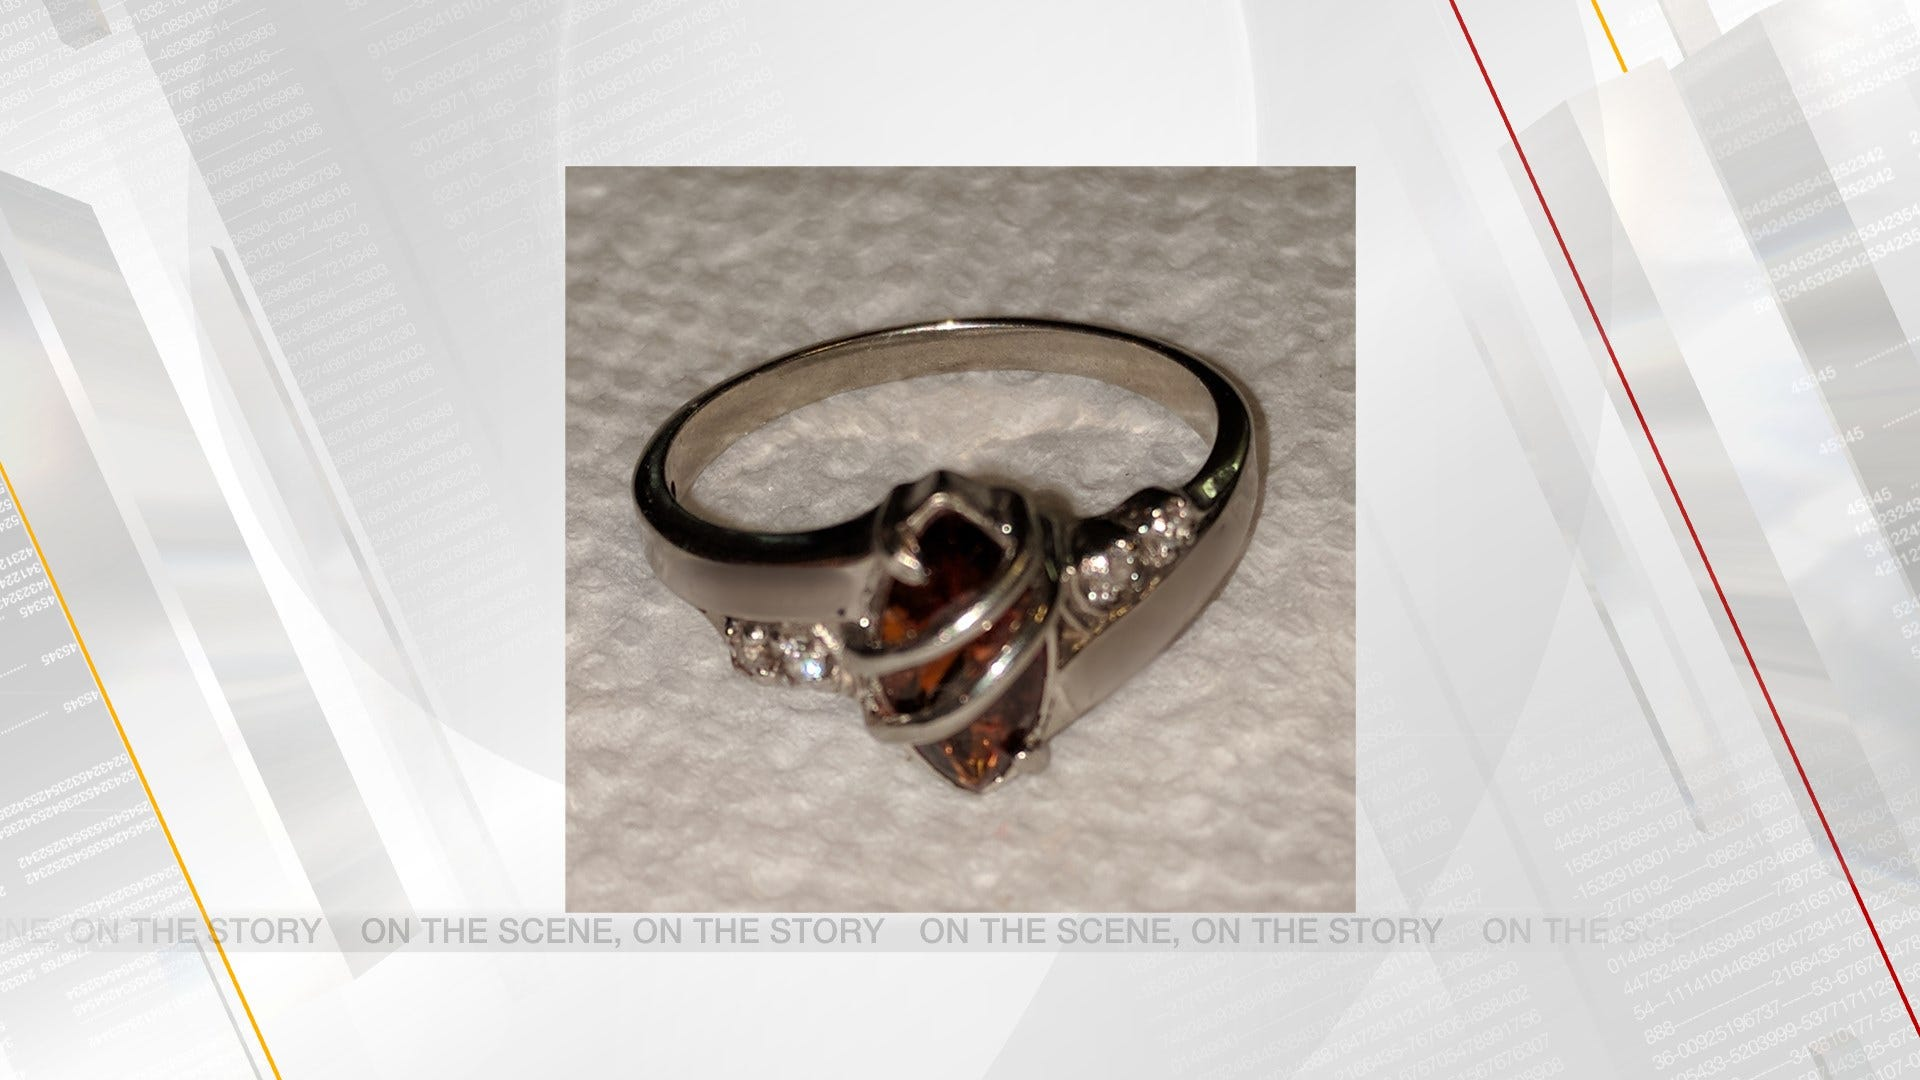 Metro Woman Hoping To Solve The Mystery Of The Found Jewelry